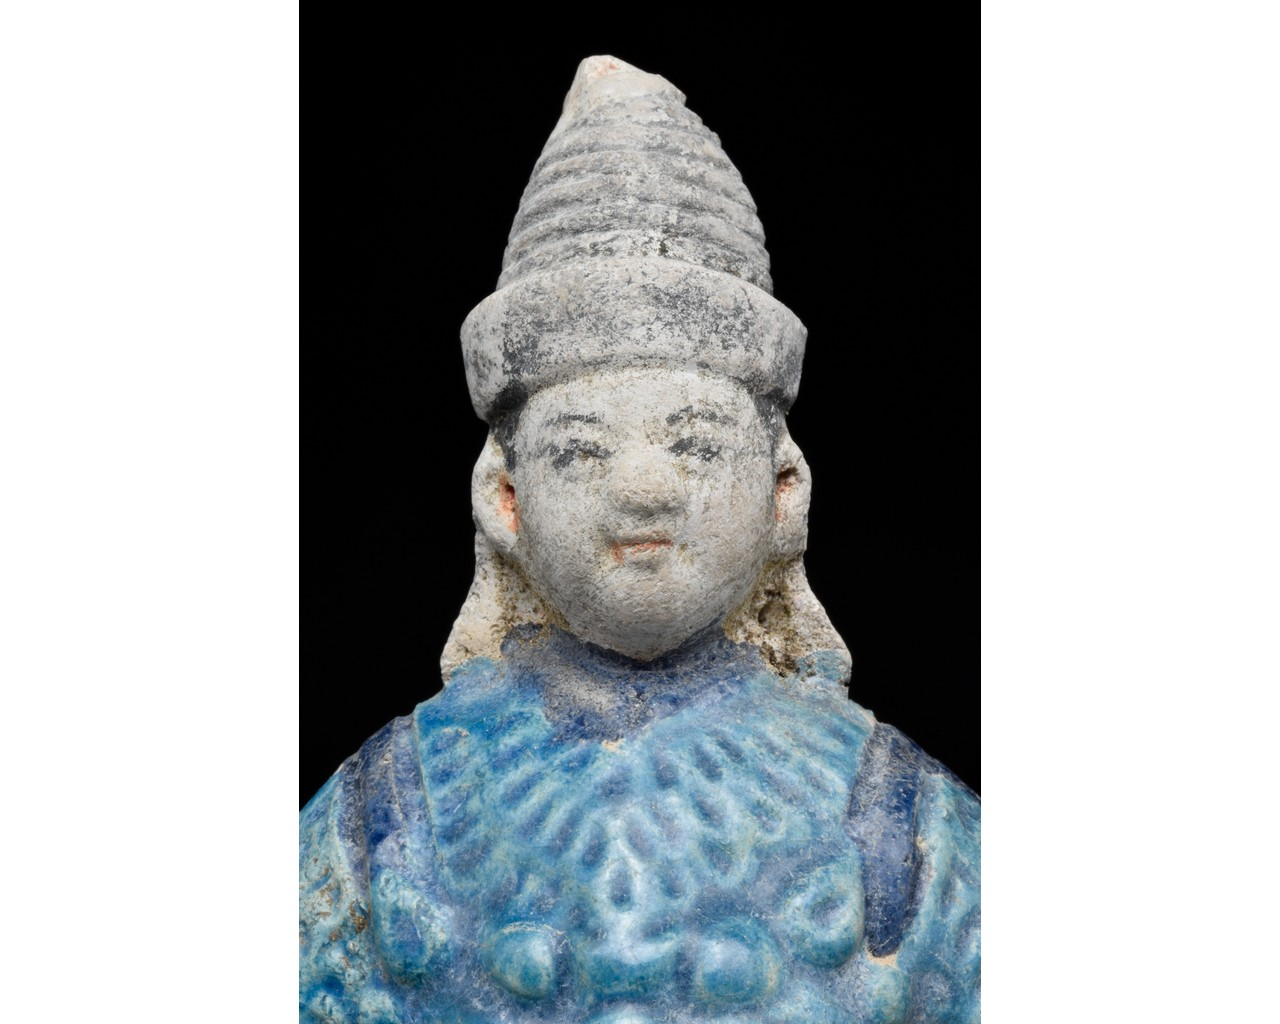 CHINESE MING DYNASTY TERRACOTTA FIGURE - Image 4 of 4